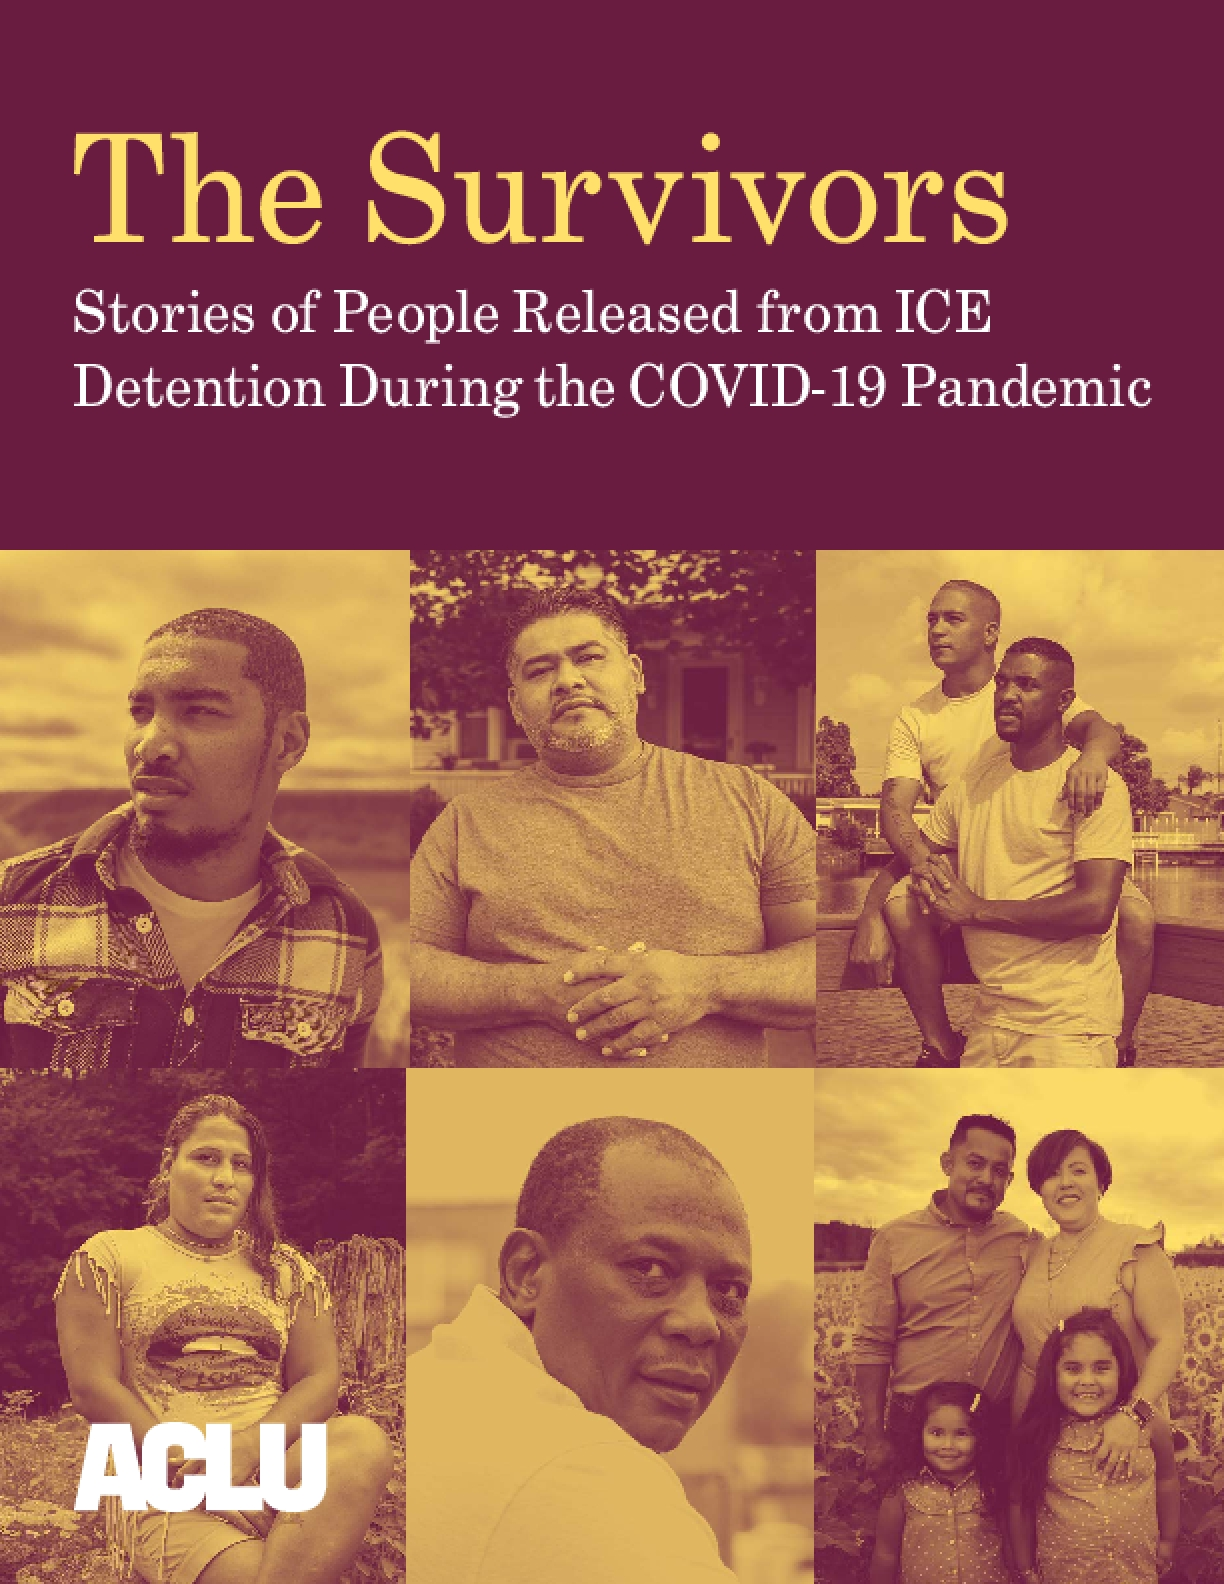 The Survivors: Stories of People Released from ICE Detention During the COVID-19 Pandemic